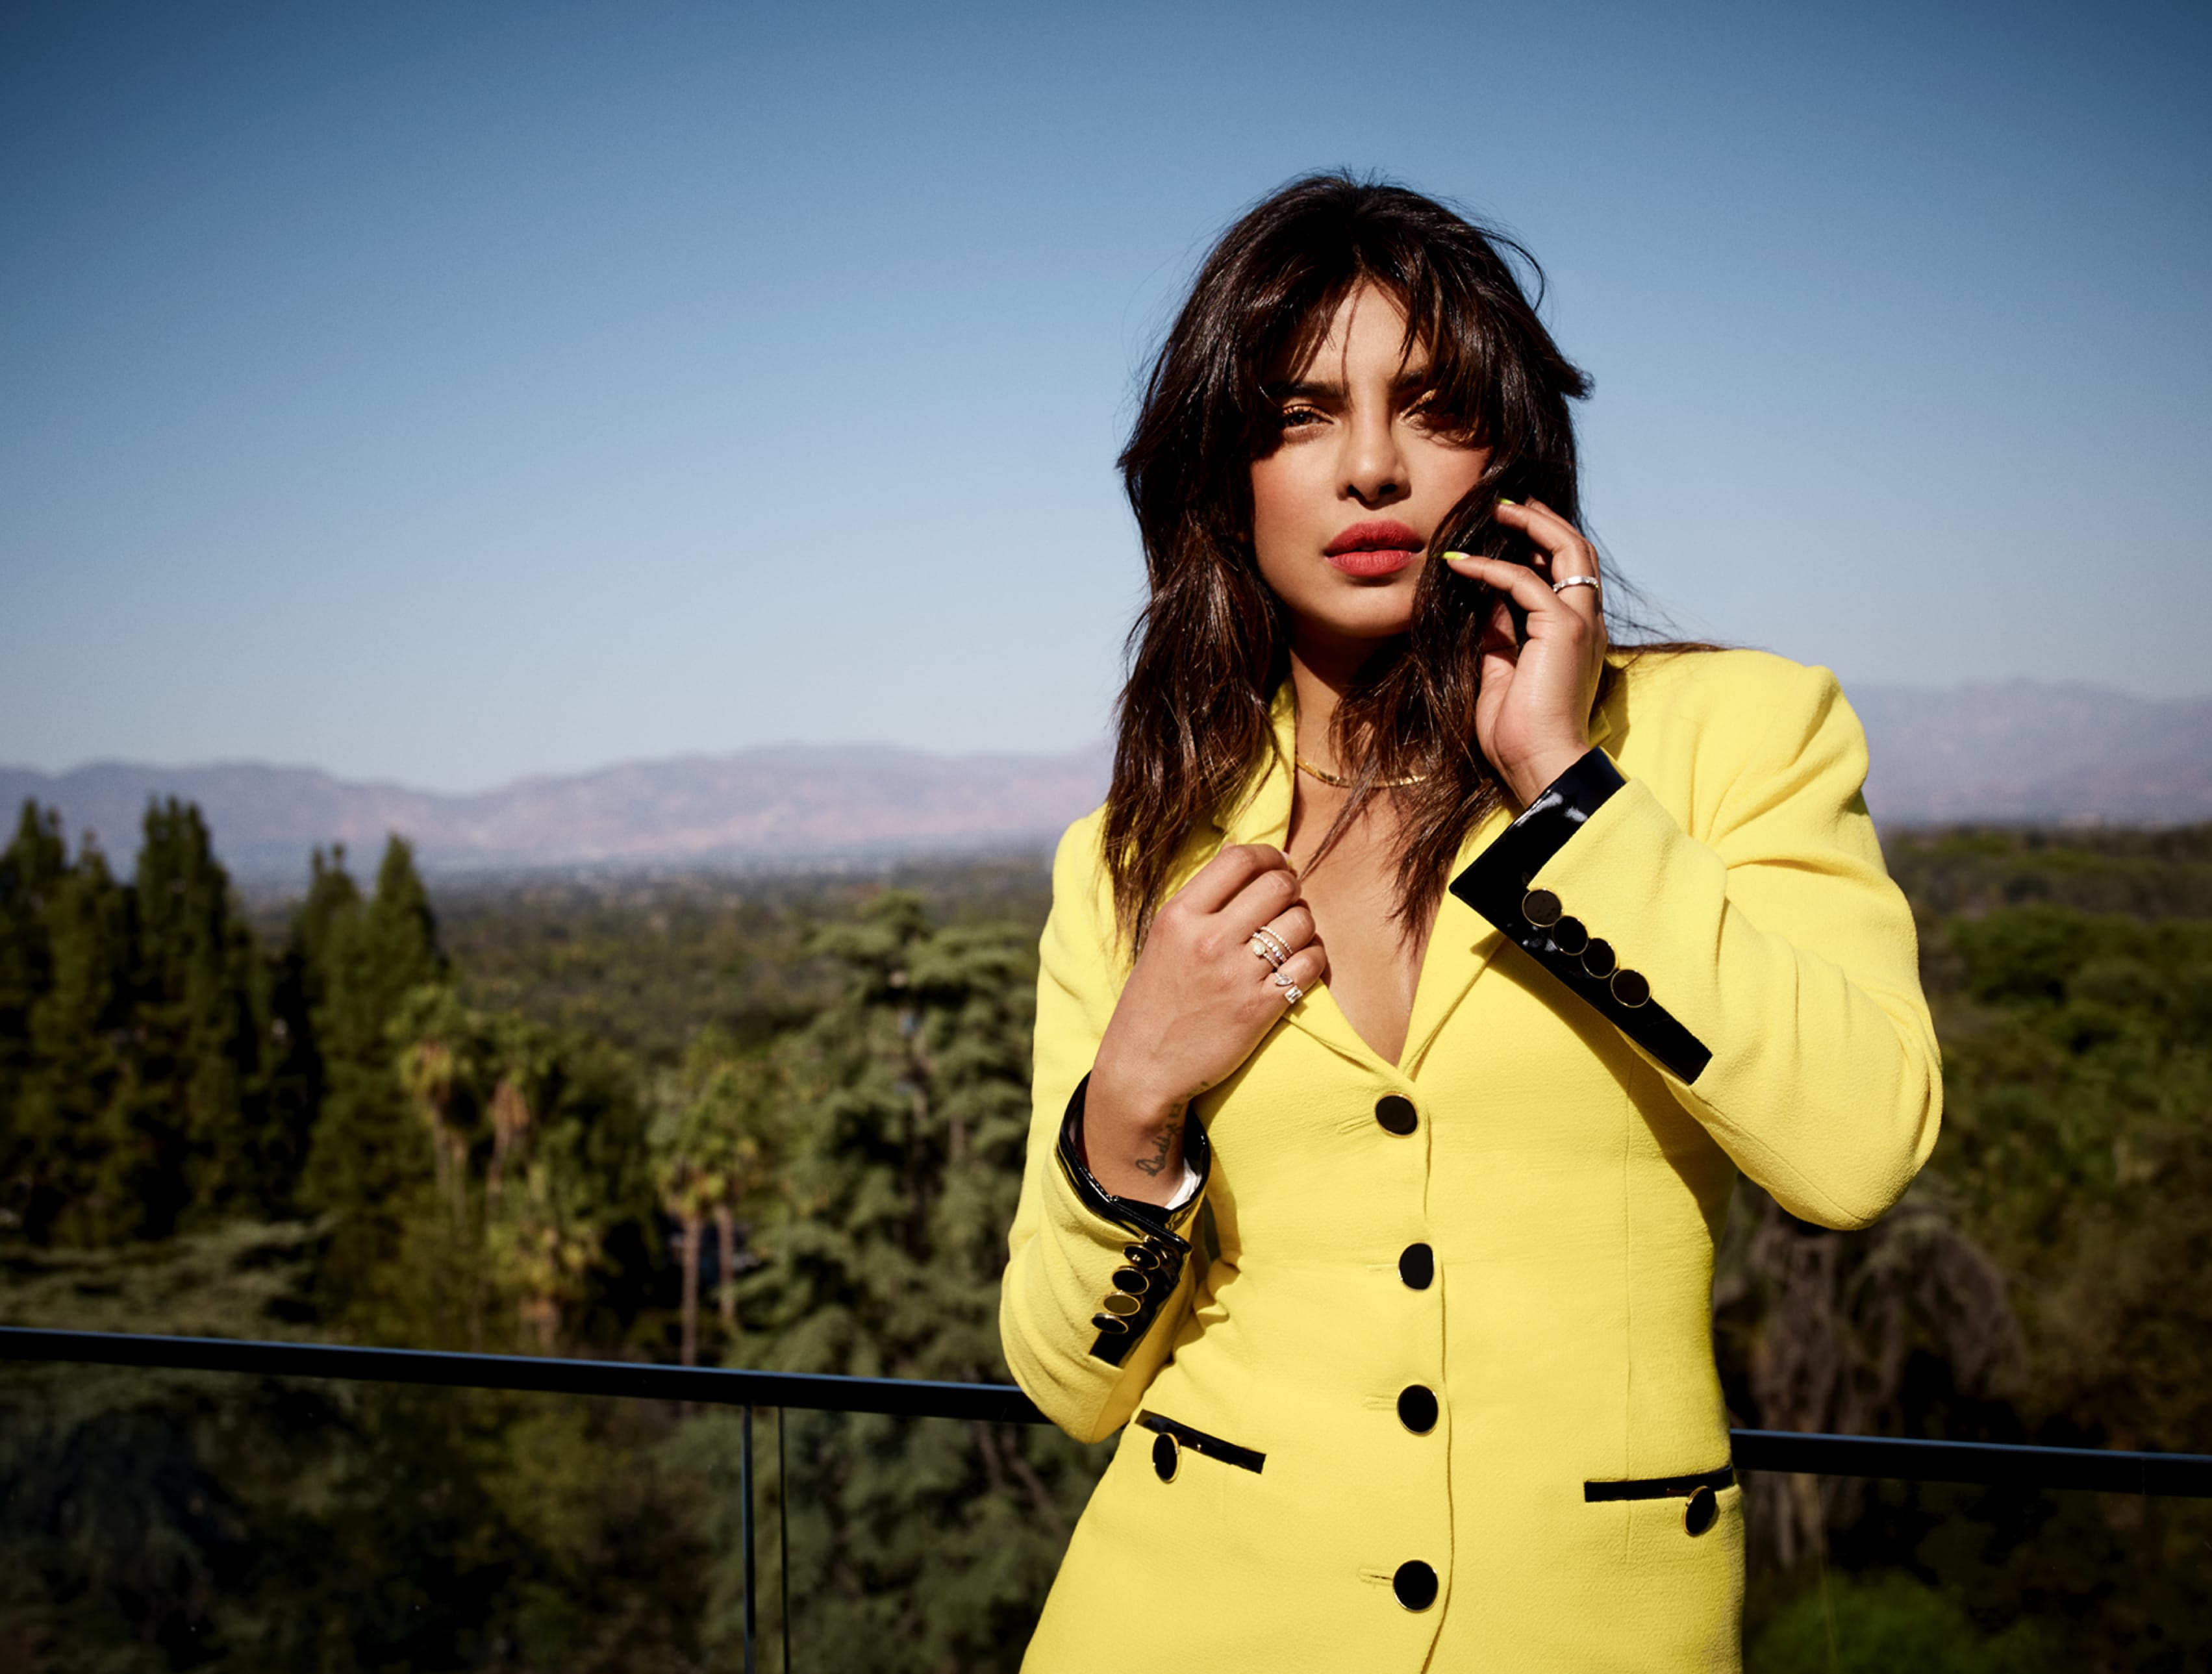 Priyanka Chopra Jonas posed again in her yellow suit, Hollywood as her backdrop. She holds one hand to her hair while the other gently grasps her lapel.